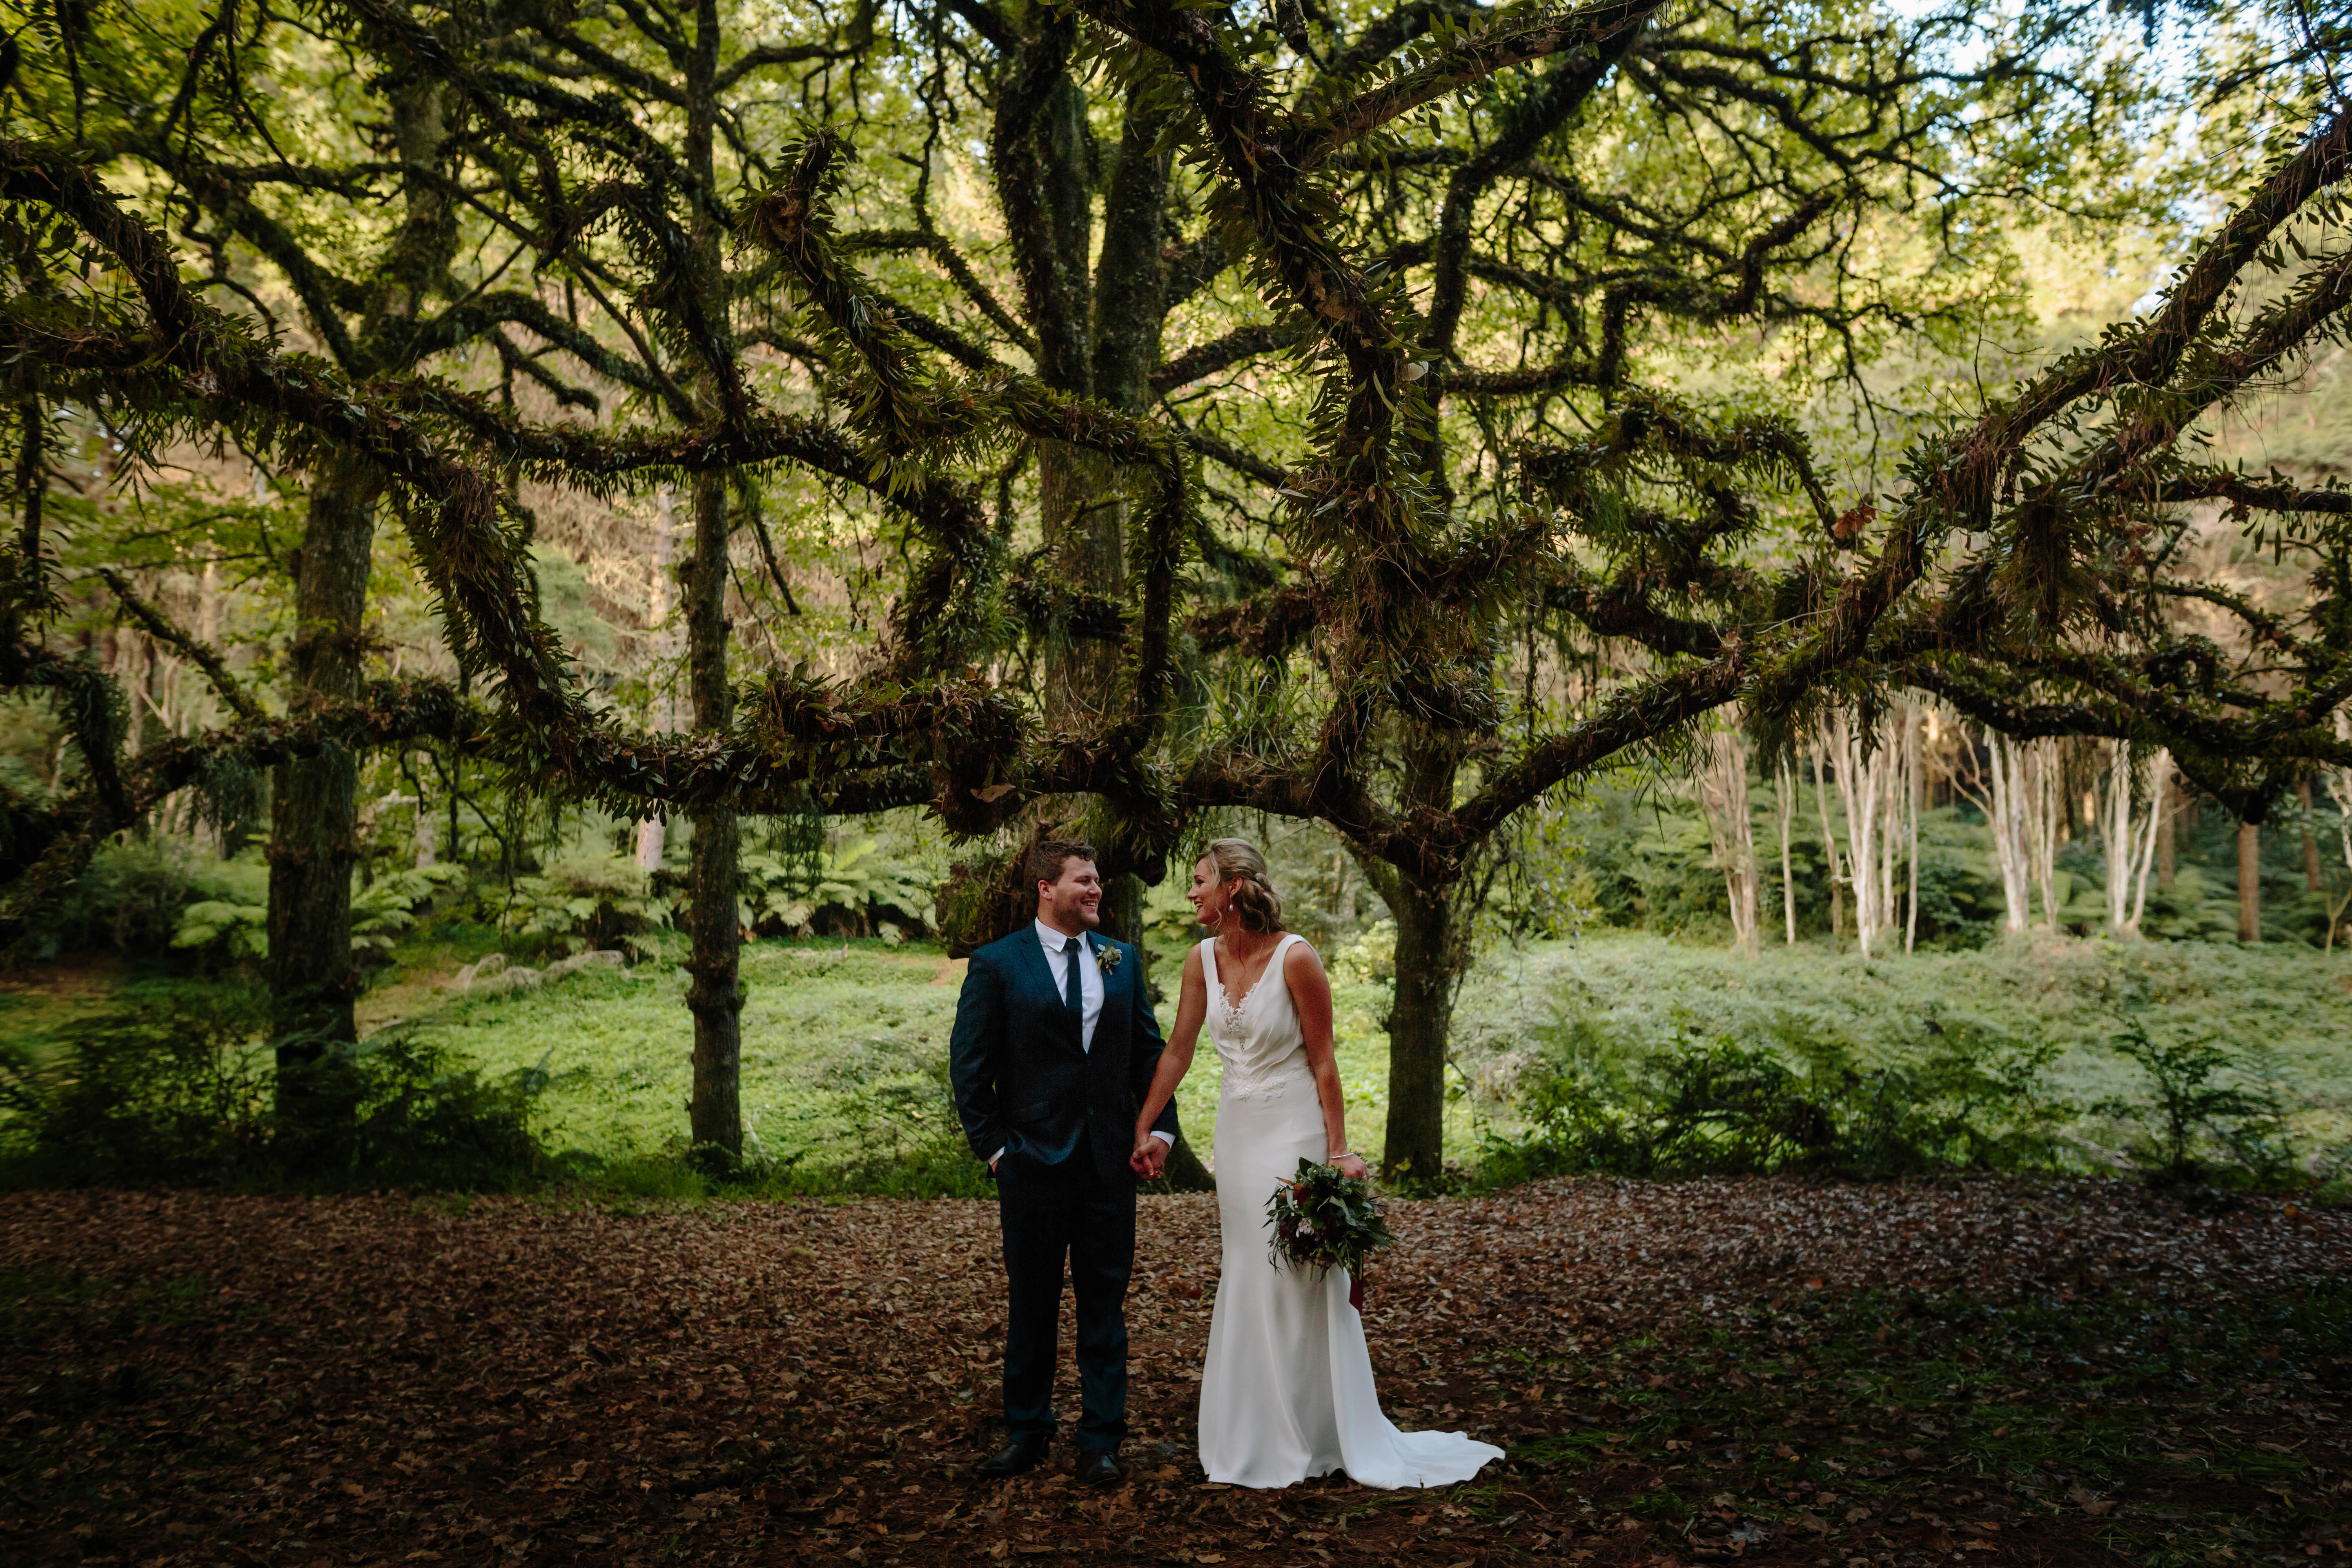 jo-mike-wedding-the-official-photographers_TOP_8471